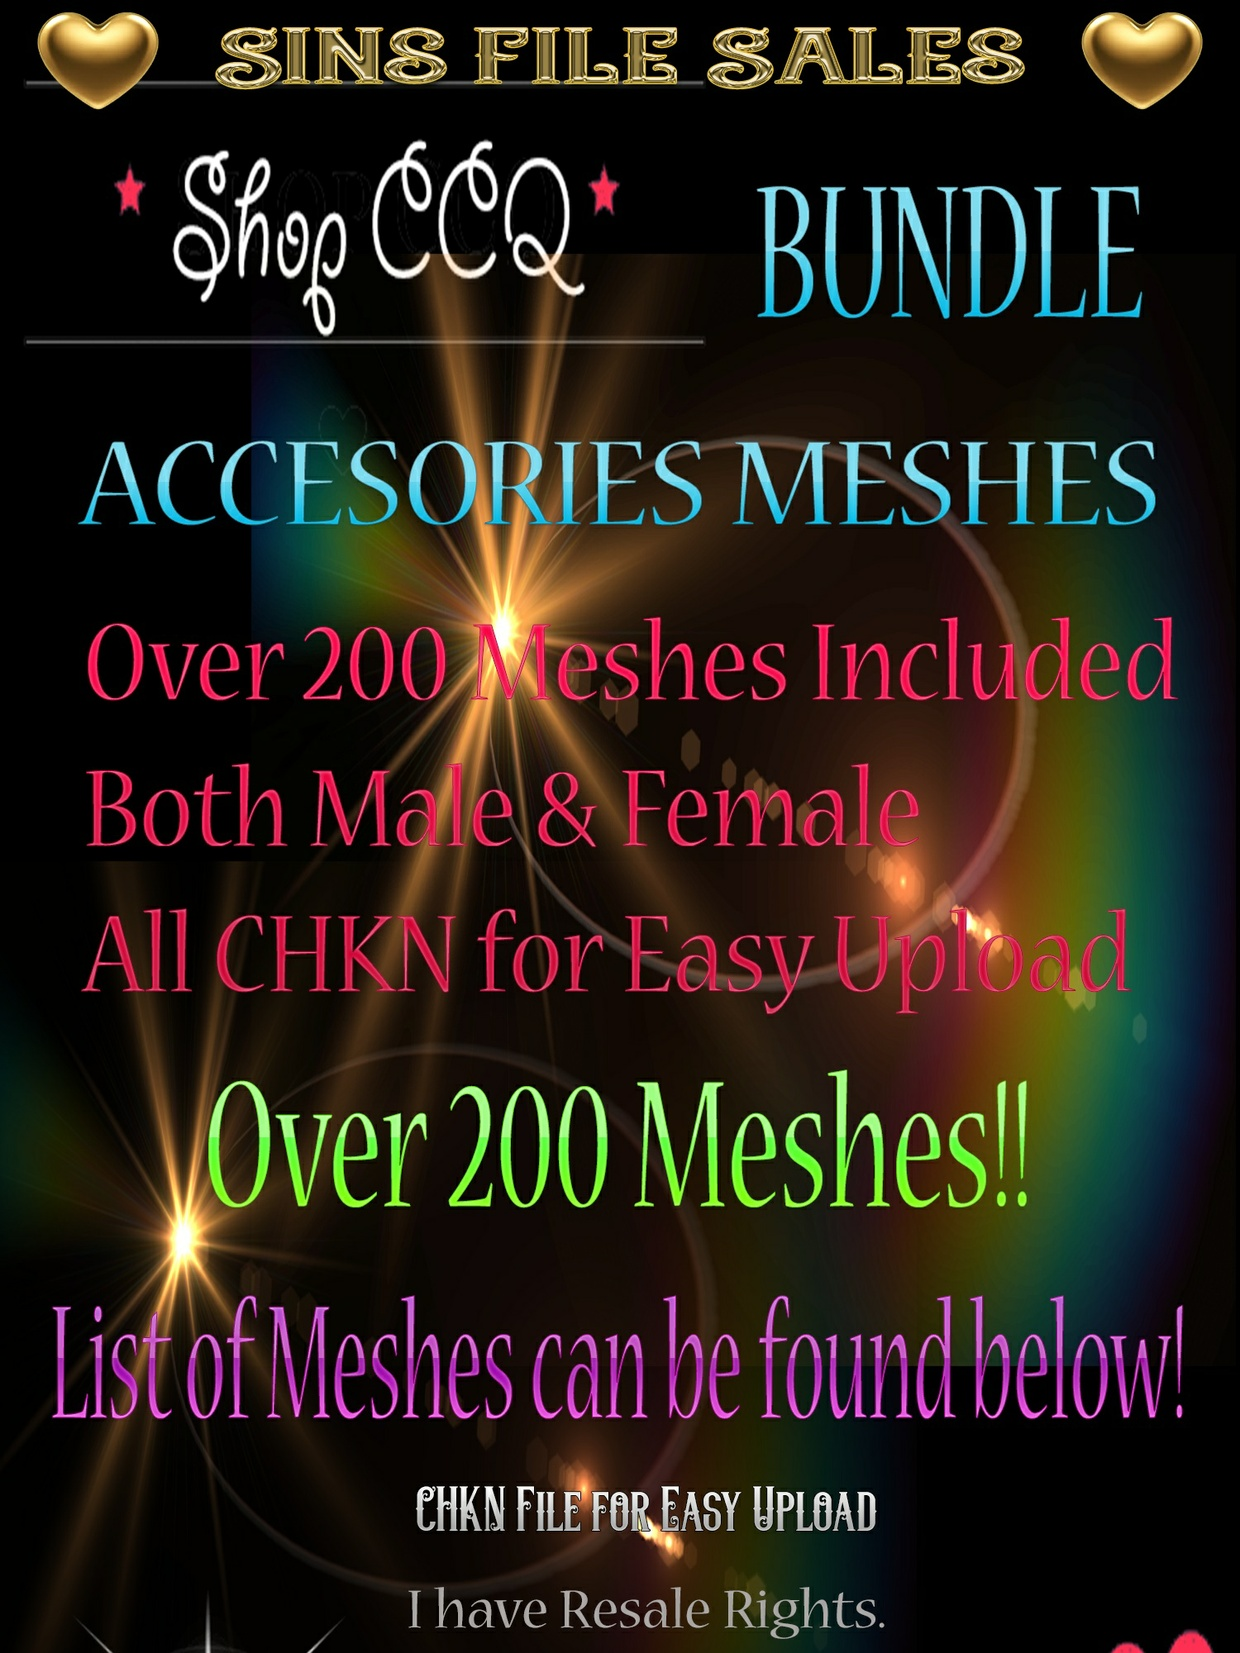 ♥SALE-Meshes♥ Over 200 Accessories for Male & Female!